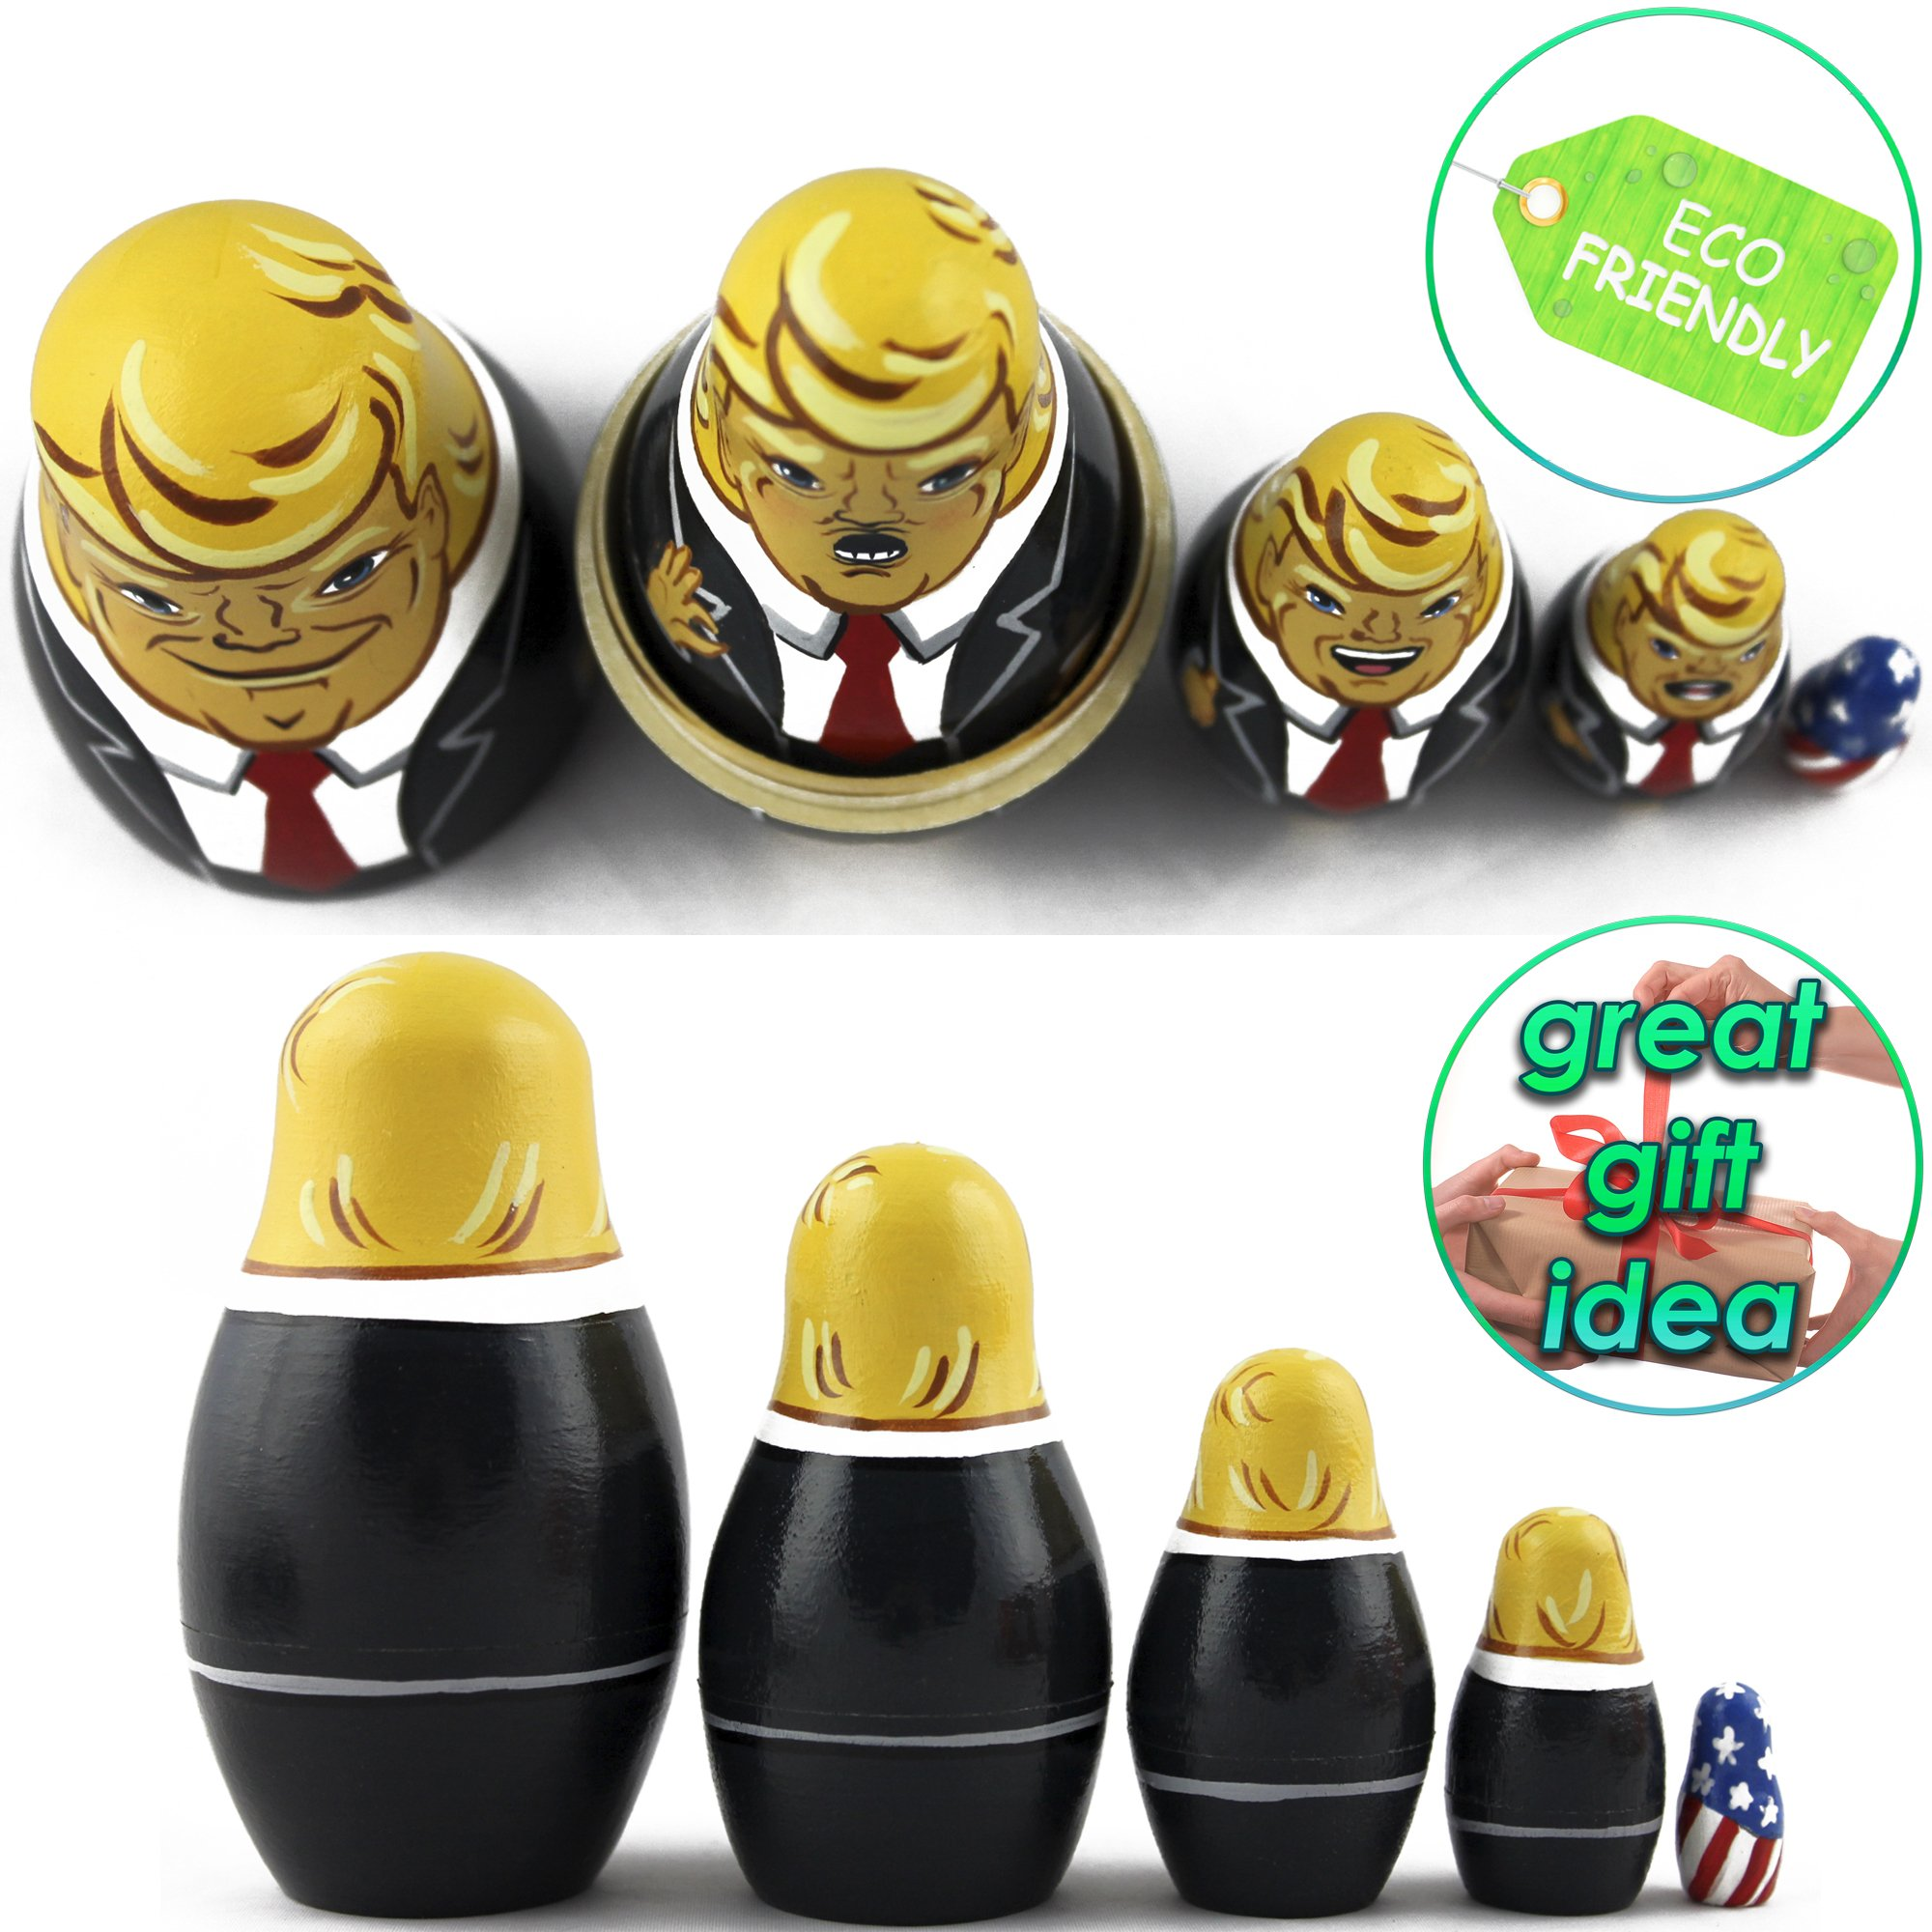 Donald Trump Gifts - Donald Trump Funny Toy Doll - Trump Nesting Dolls Gag Gifts - Set 5 pc 3.7 inches by MATRYOSHKA&HANDICRAFT (Image #6)